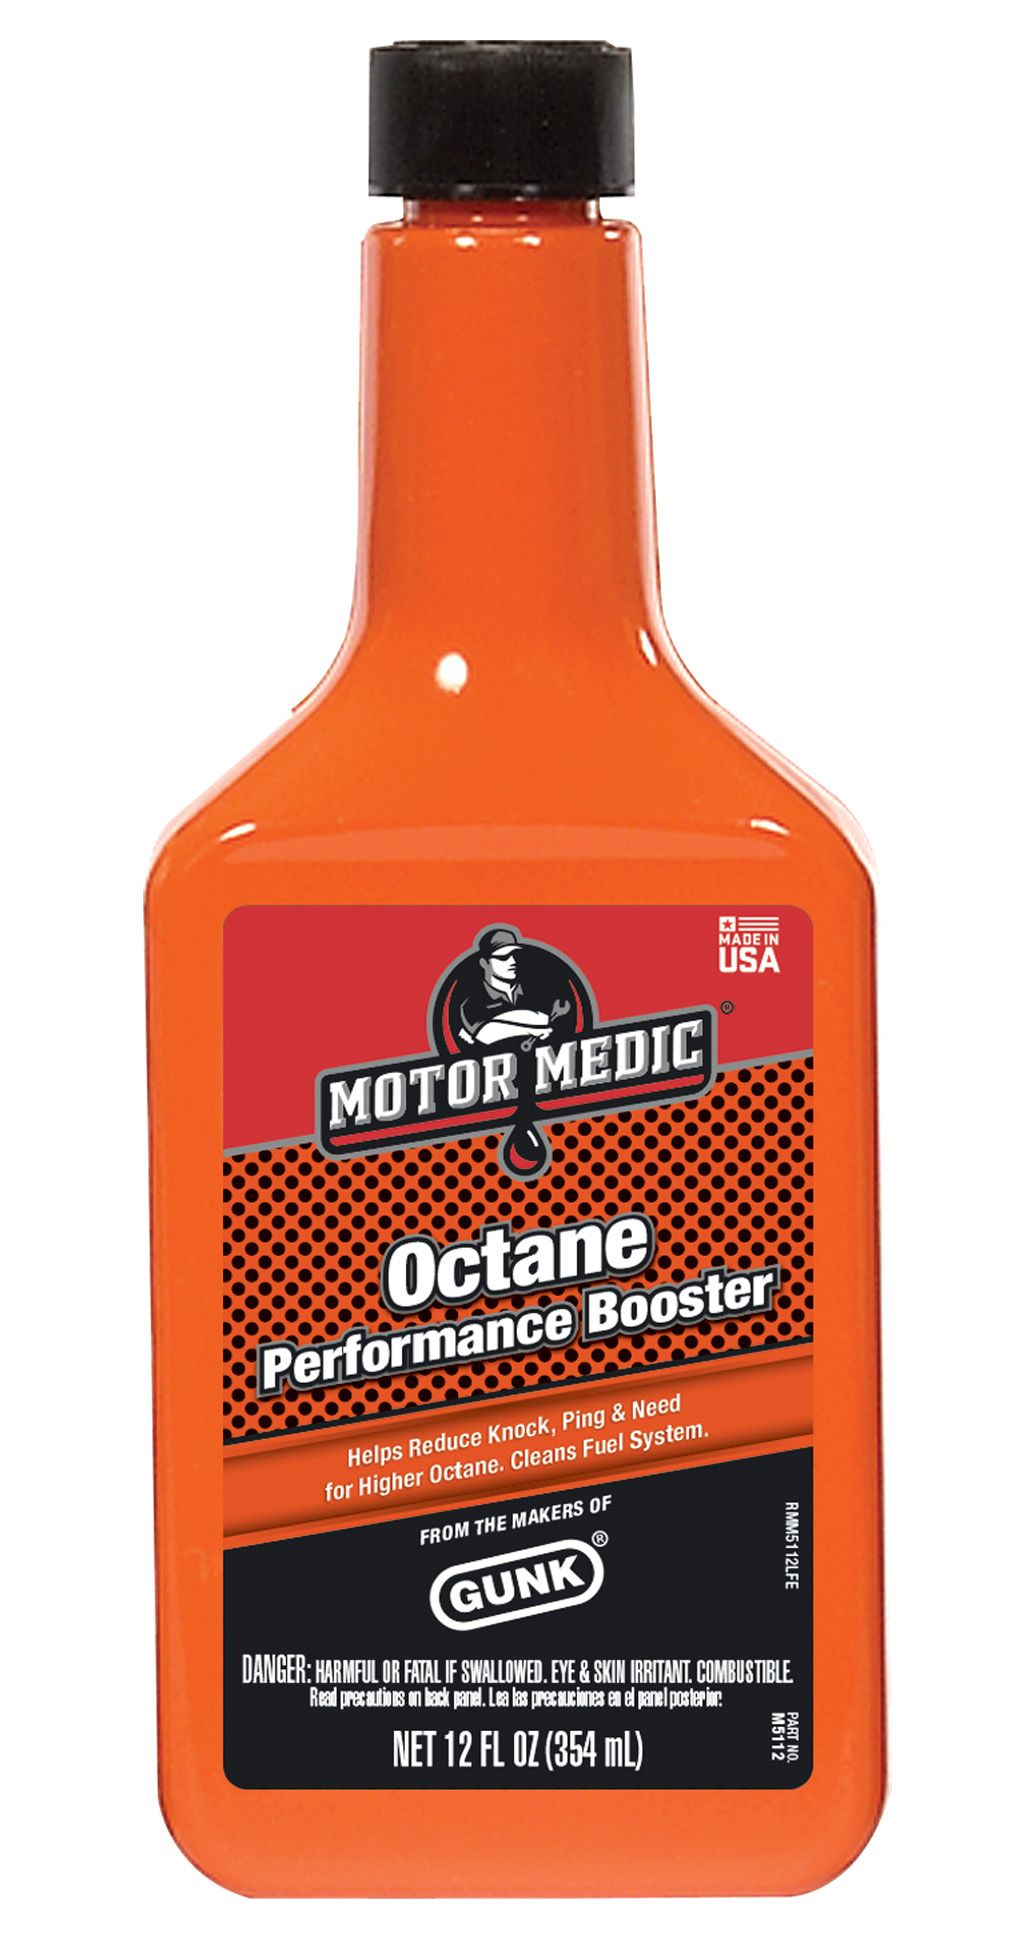 Octane Performance Booster Image